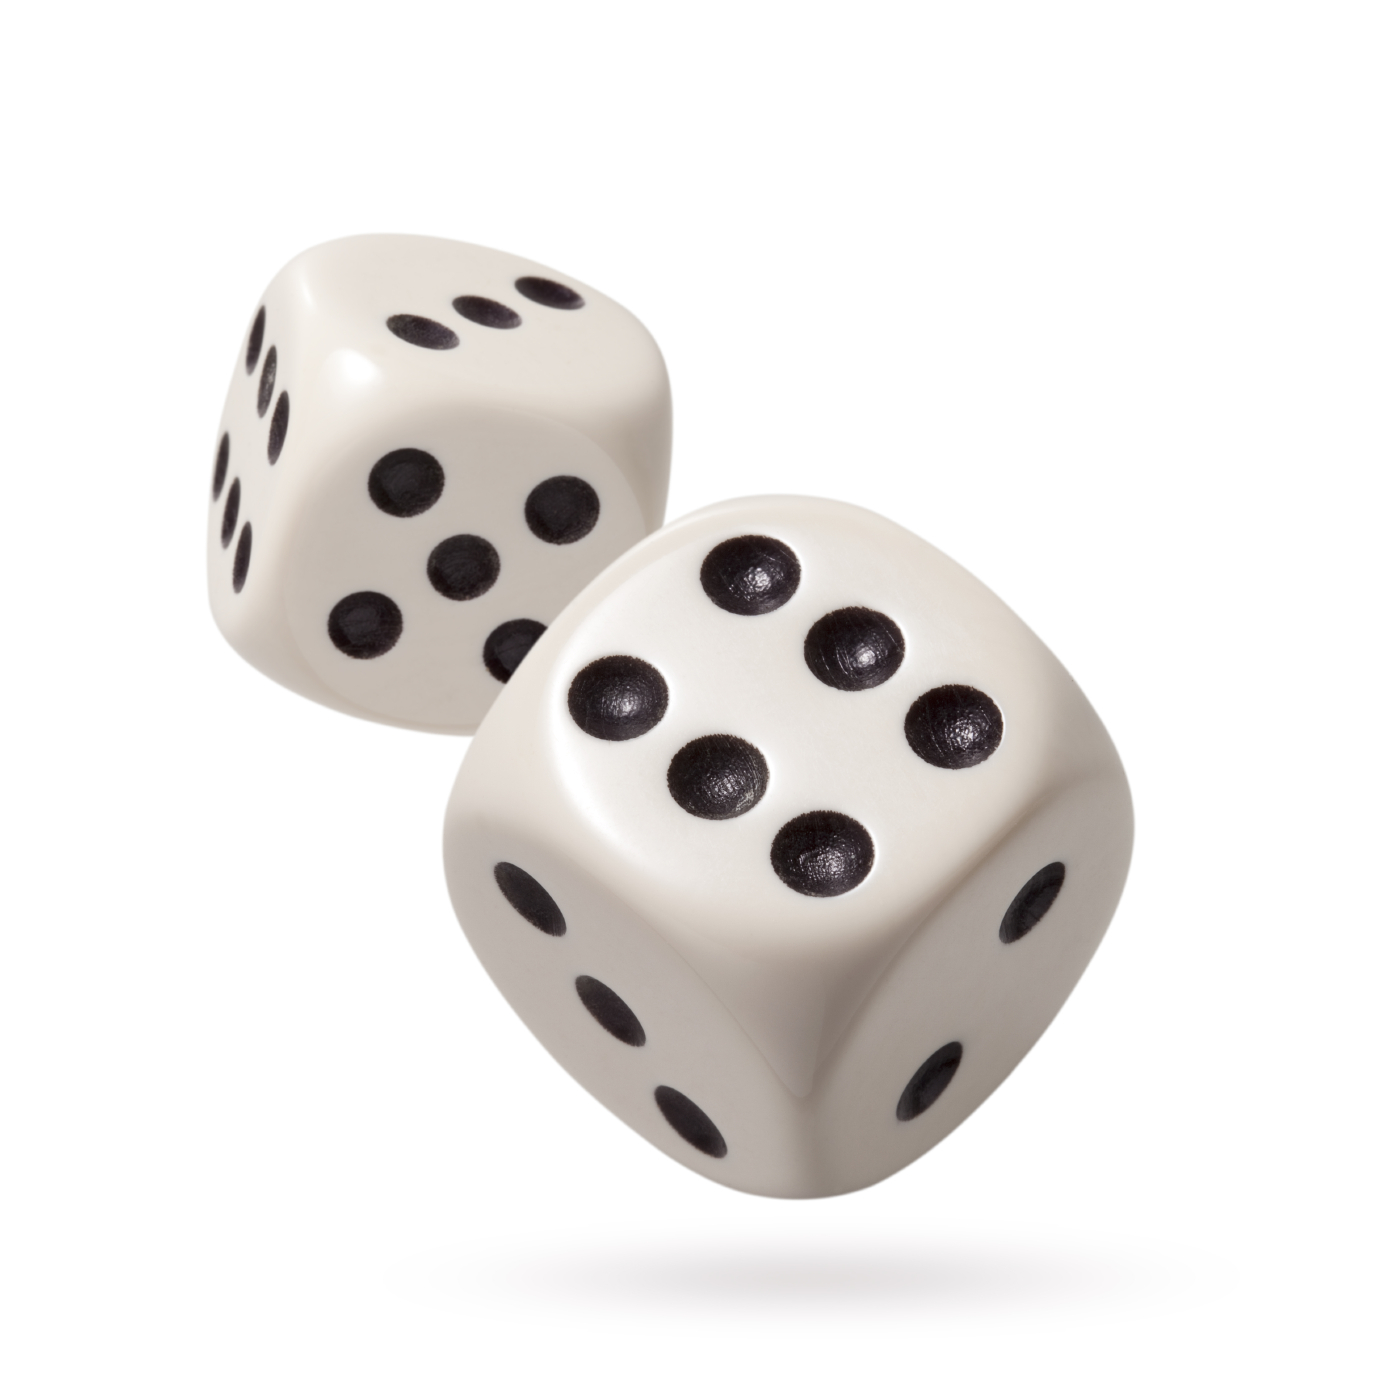 Amazing Dice Pictures U0026 Backgrounds - Dice HD PNG